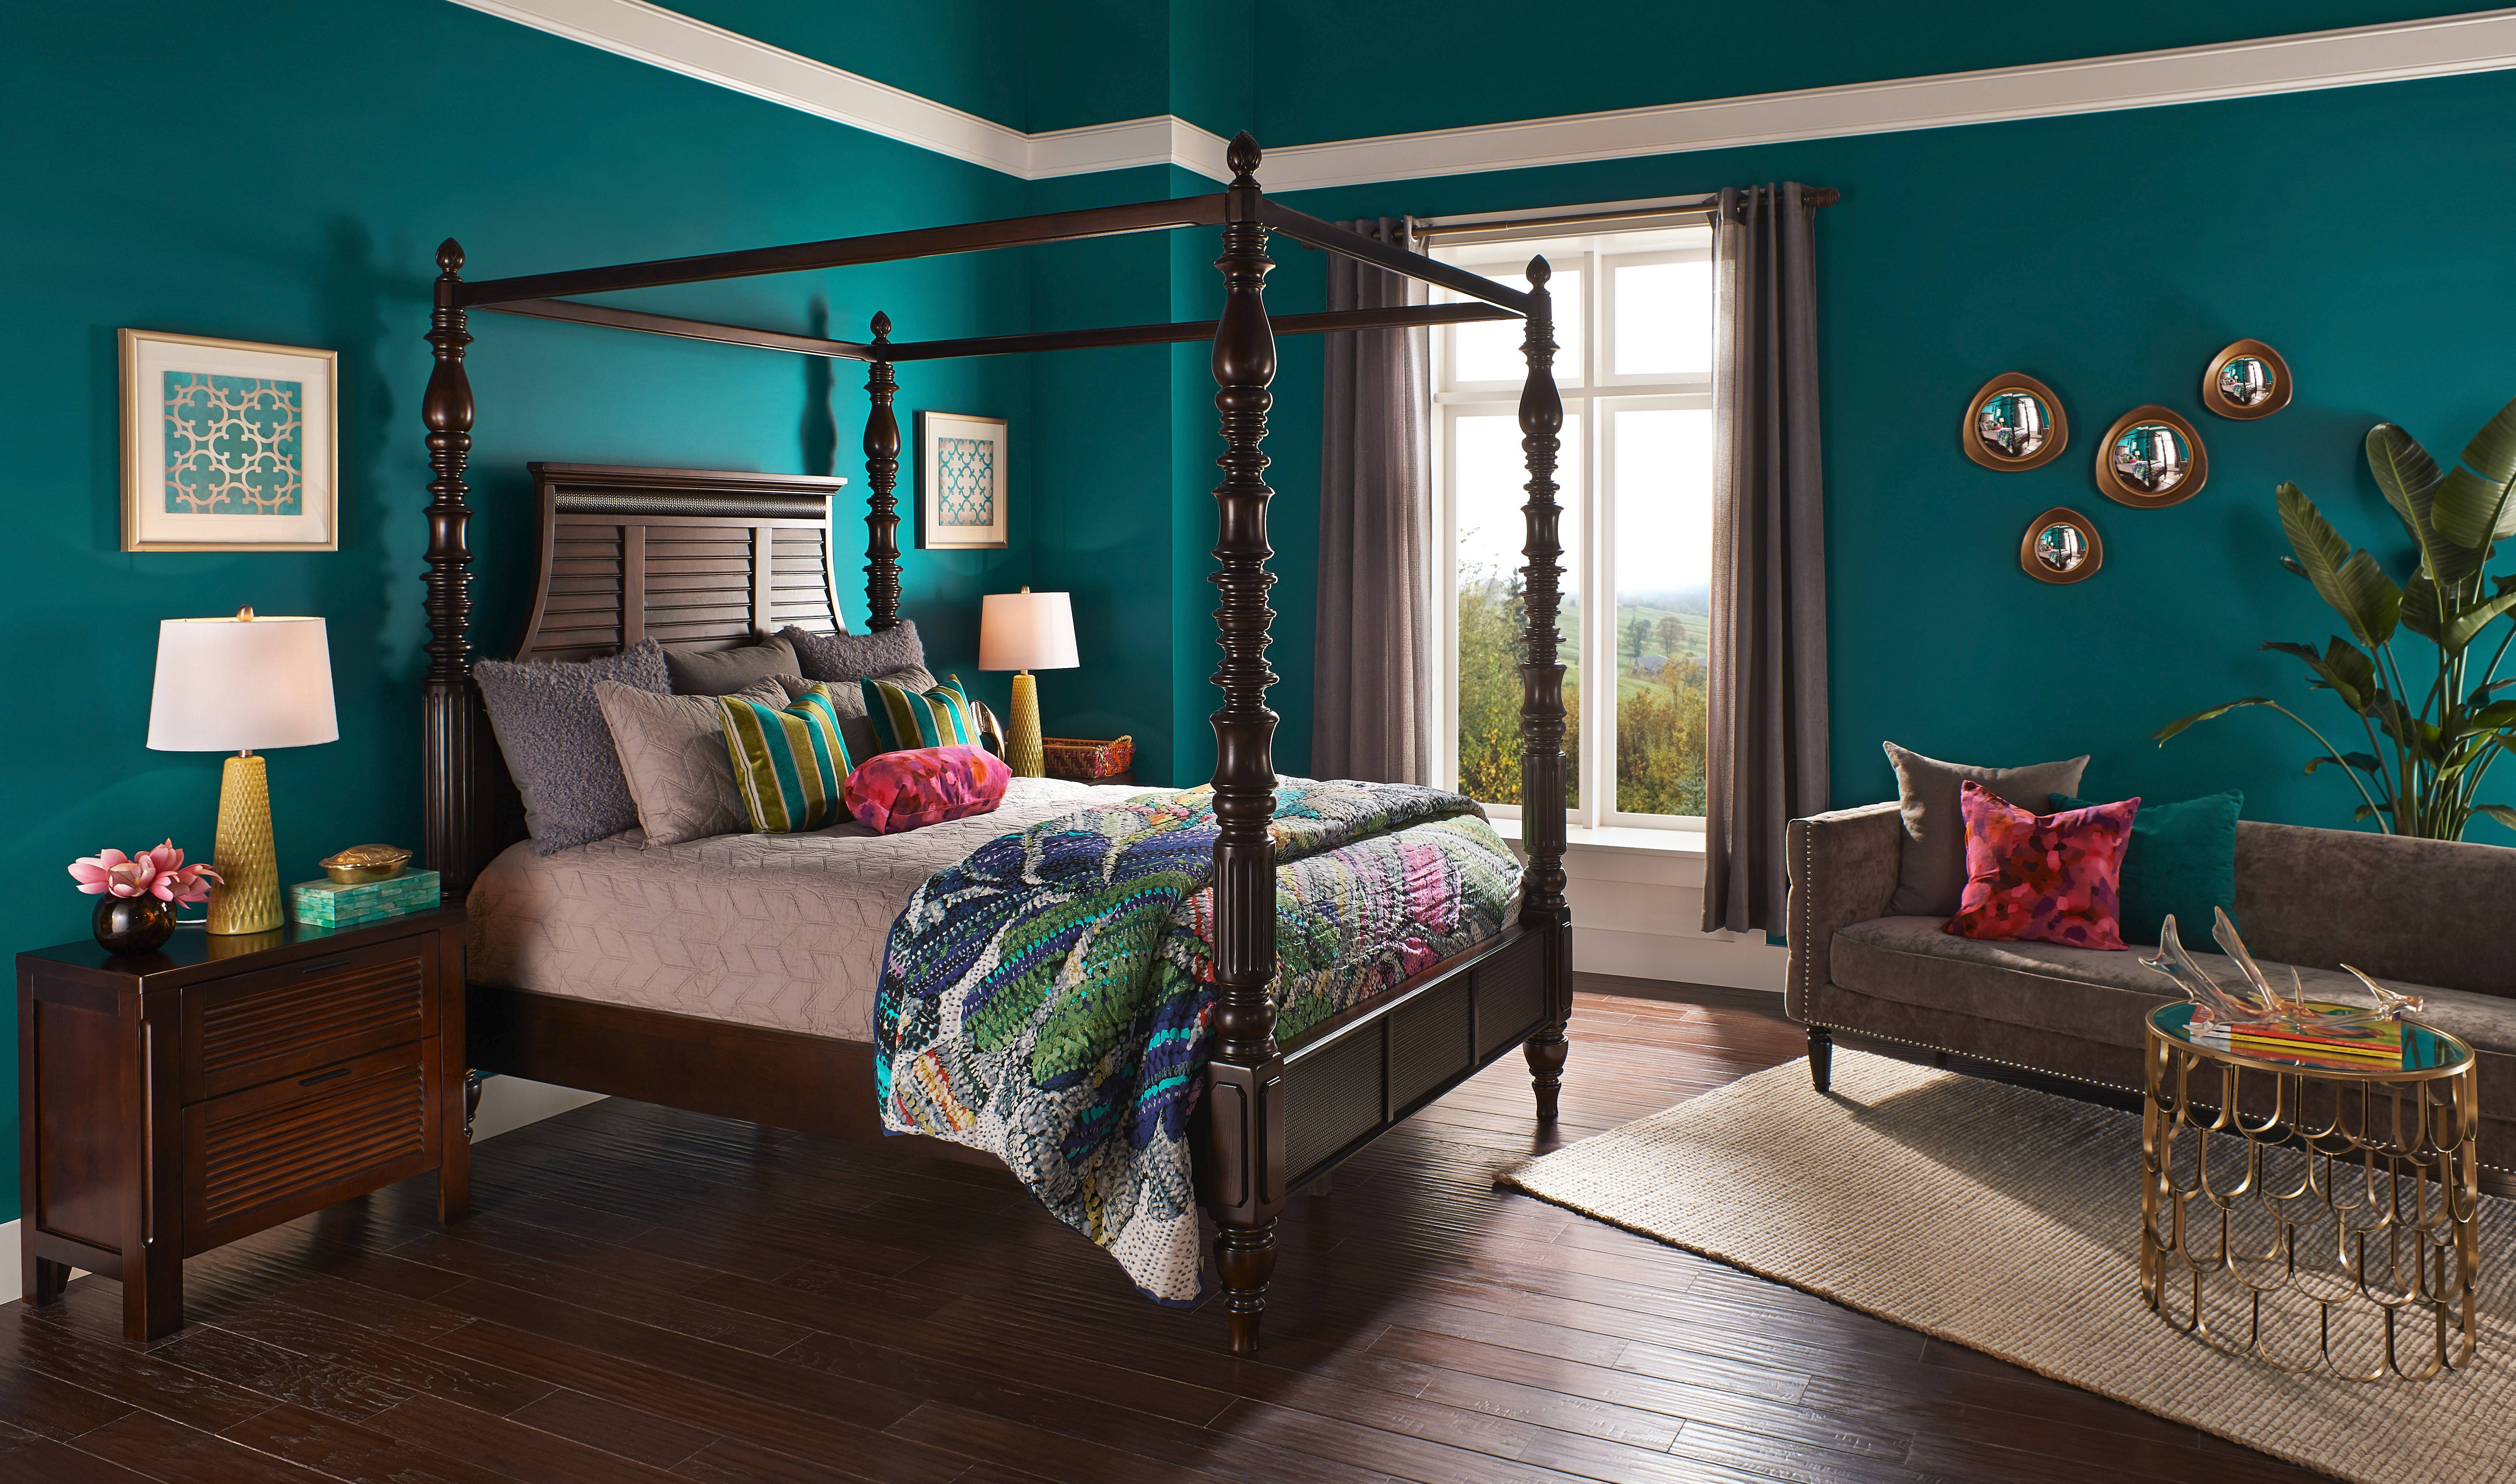 Design experts say there are three hot color themes for 2015: Renaissance, pastel and bright retro.